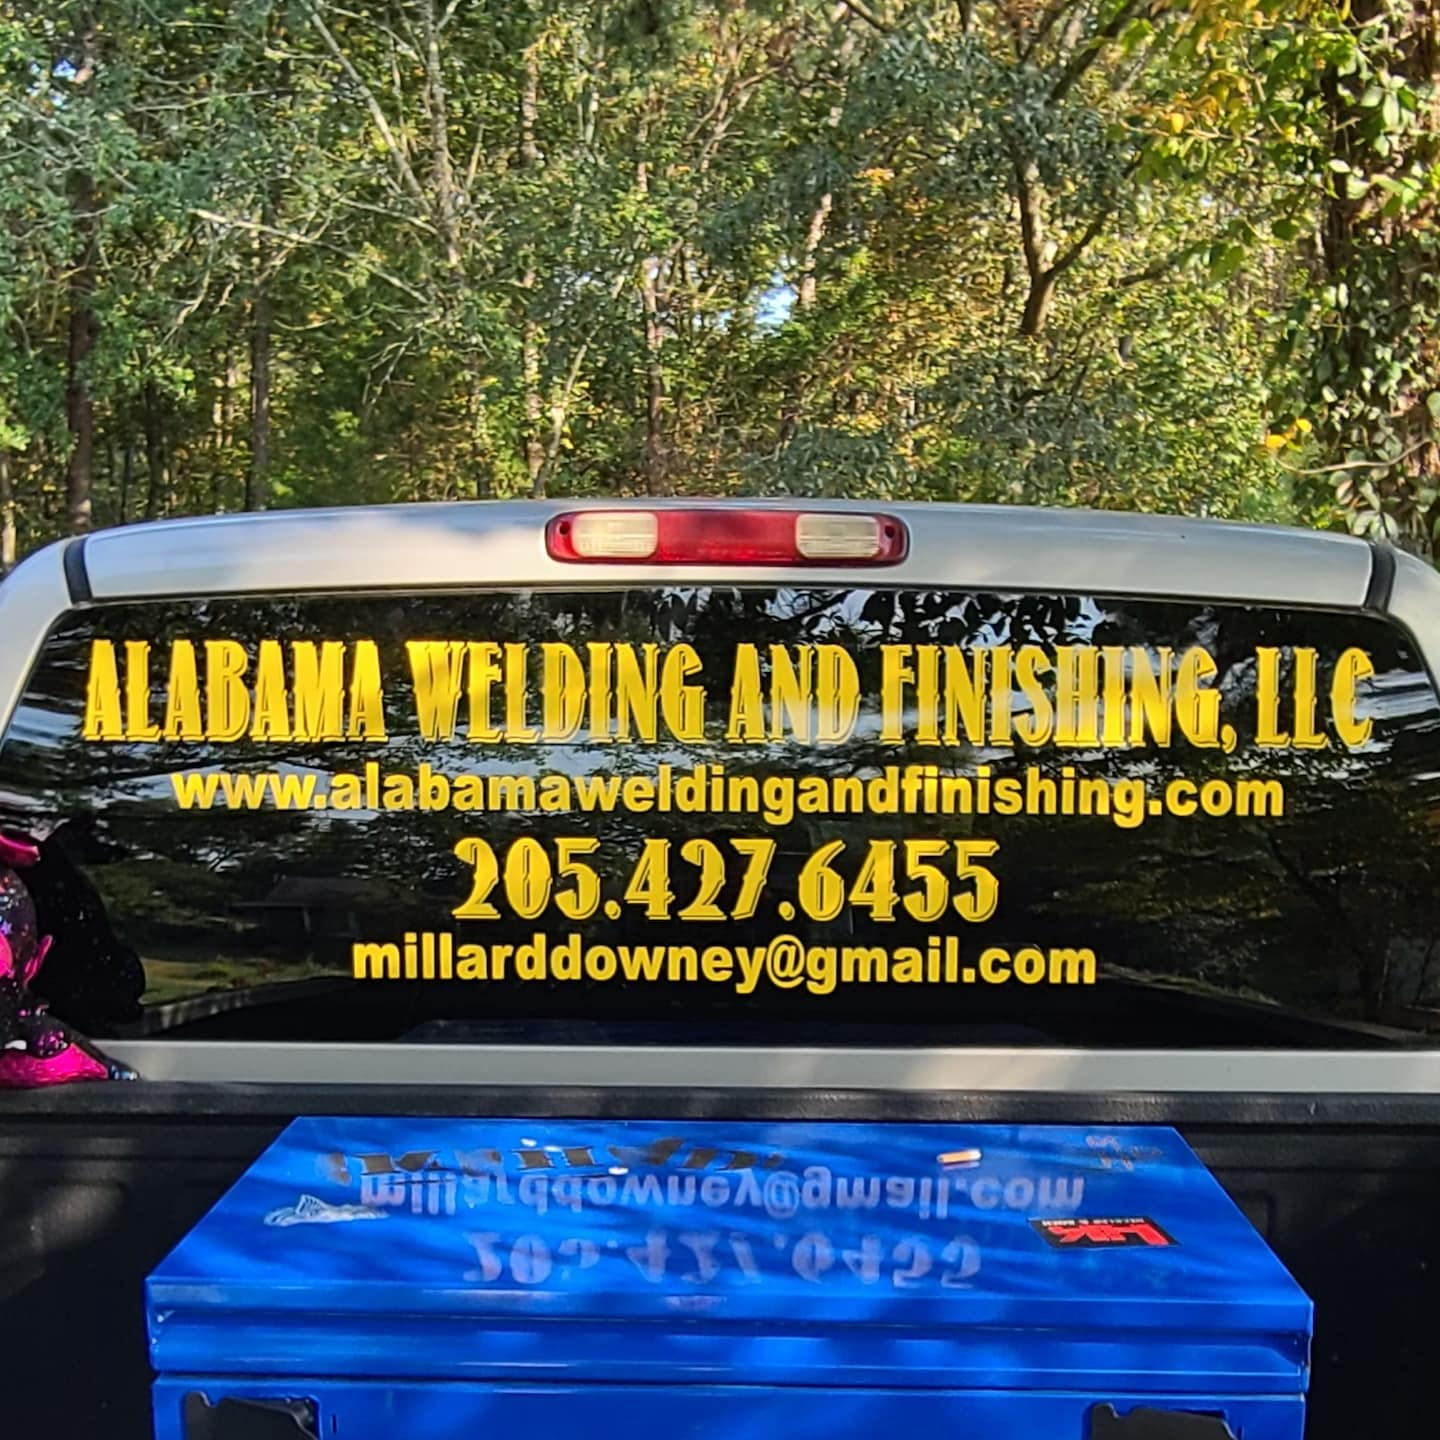 Alabama Welding and Finishing LLC